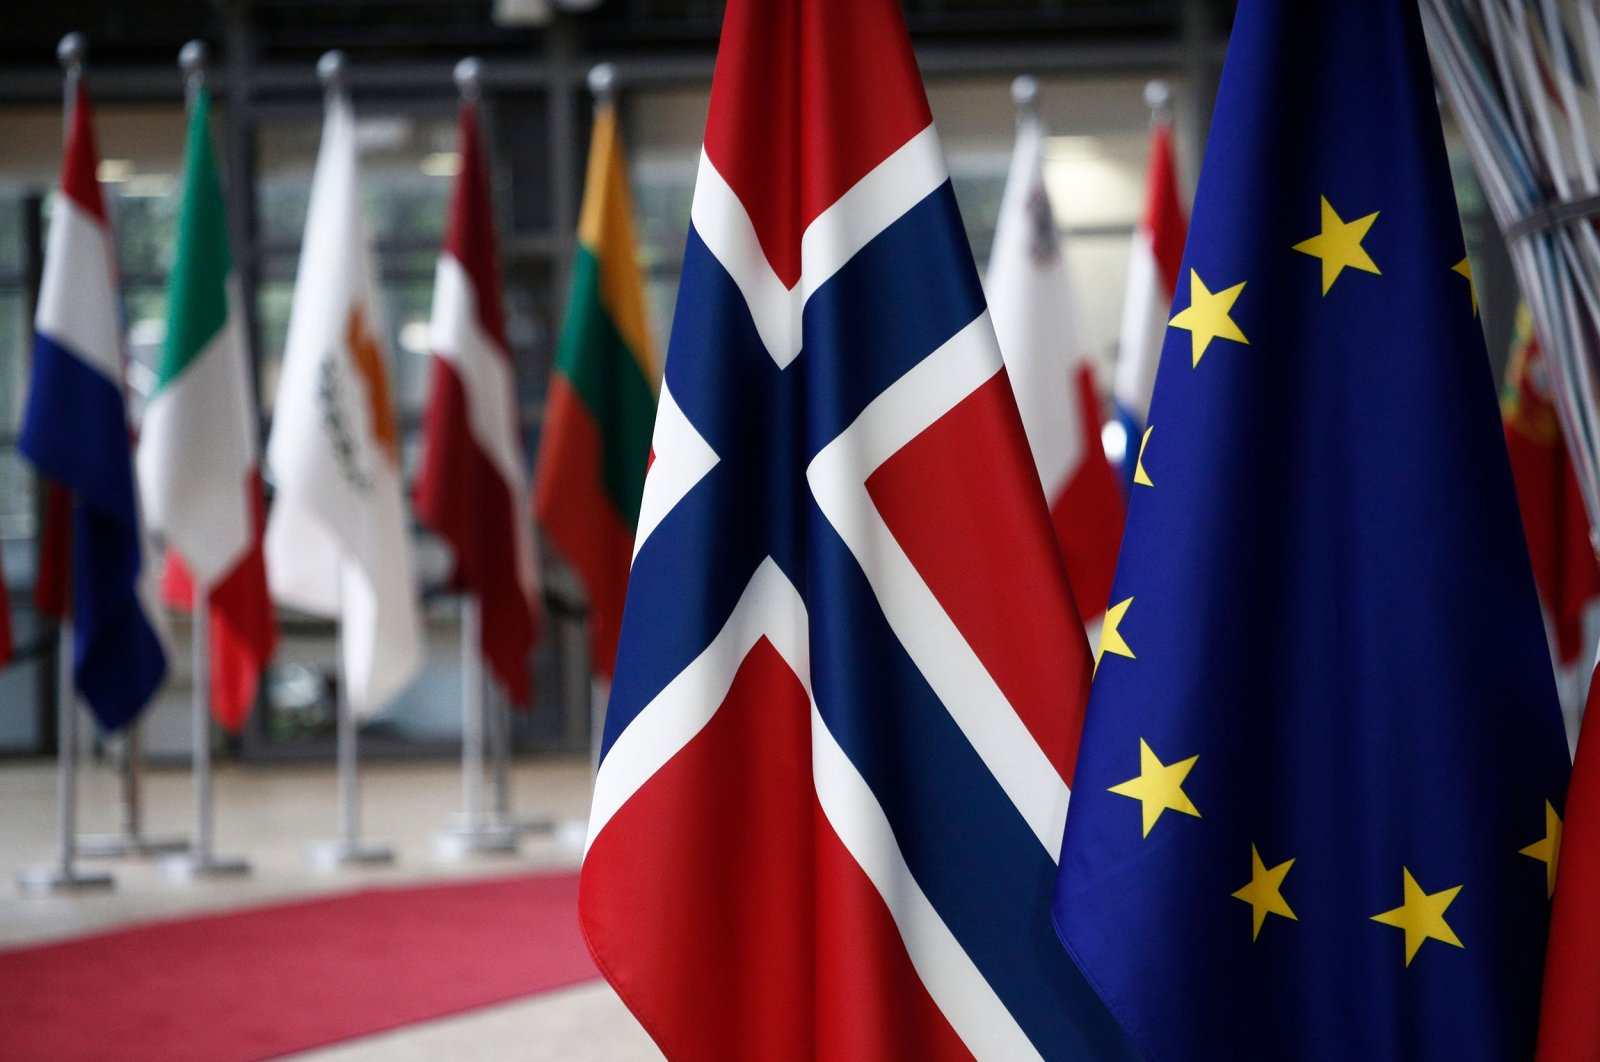 The flags of Norway and the European Union are seen in the EU Council building in Brussels, Belgium, June 5, 2018. (Shutterstock Photo)